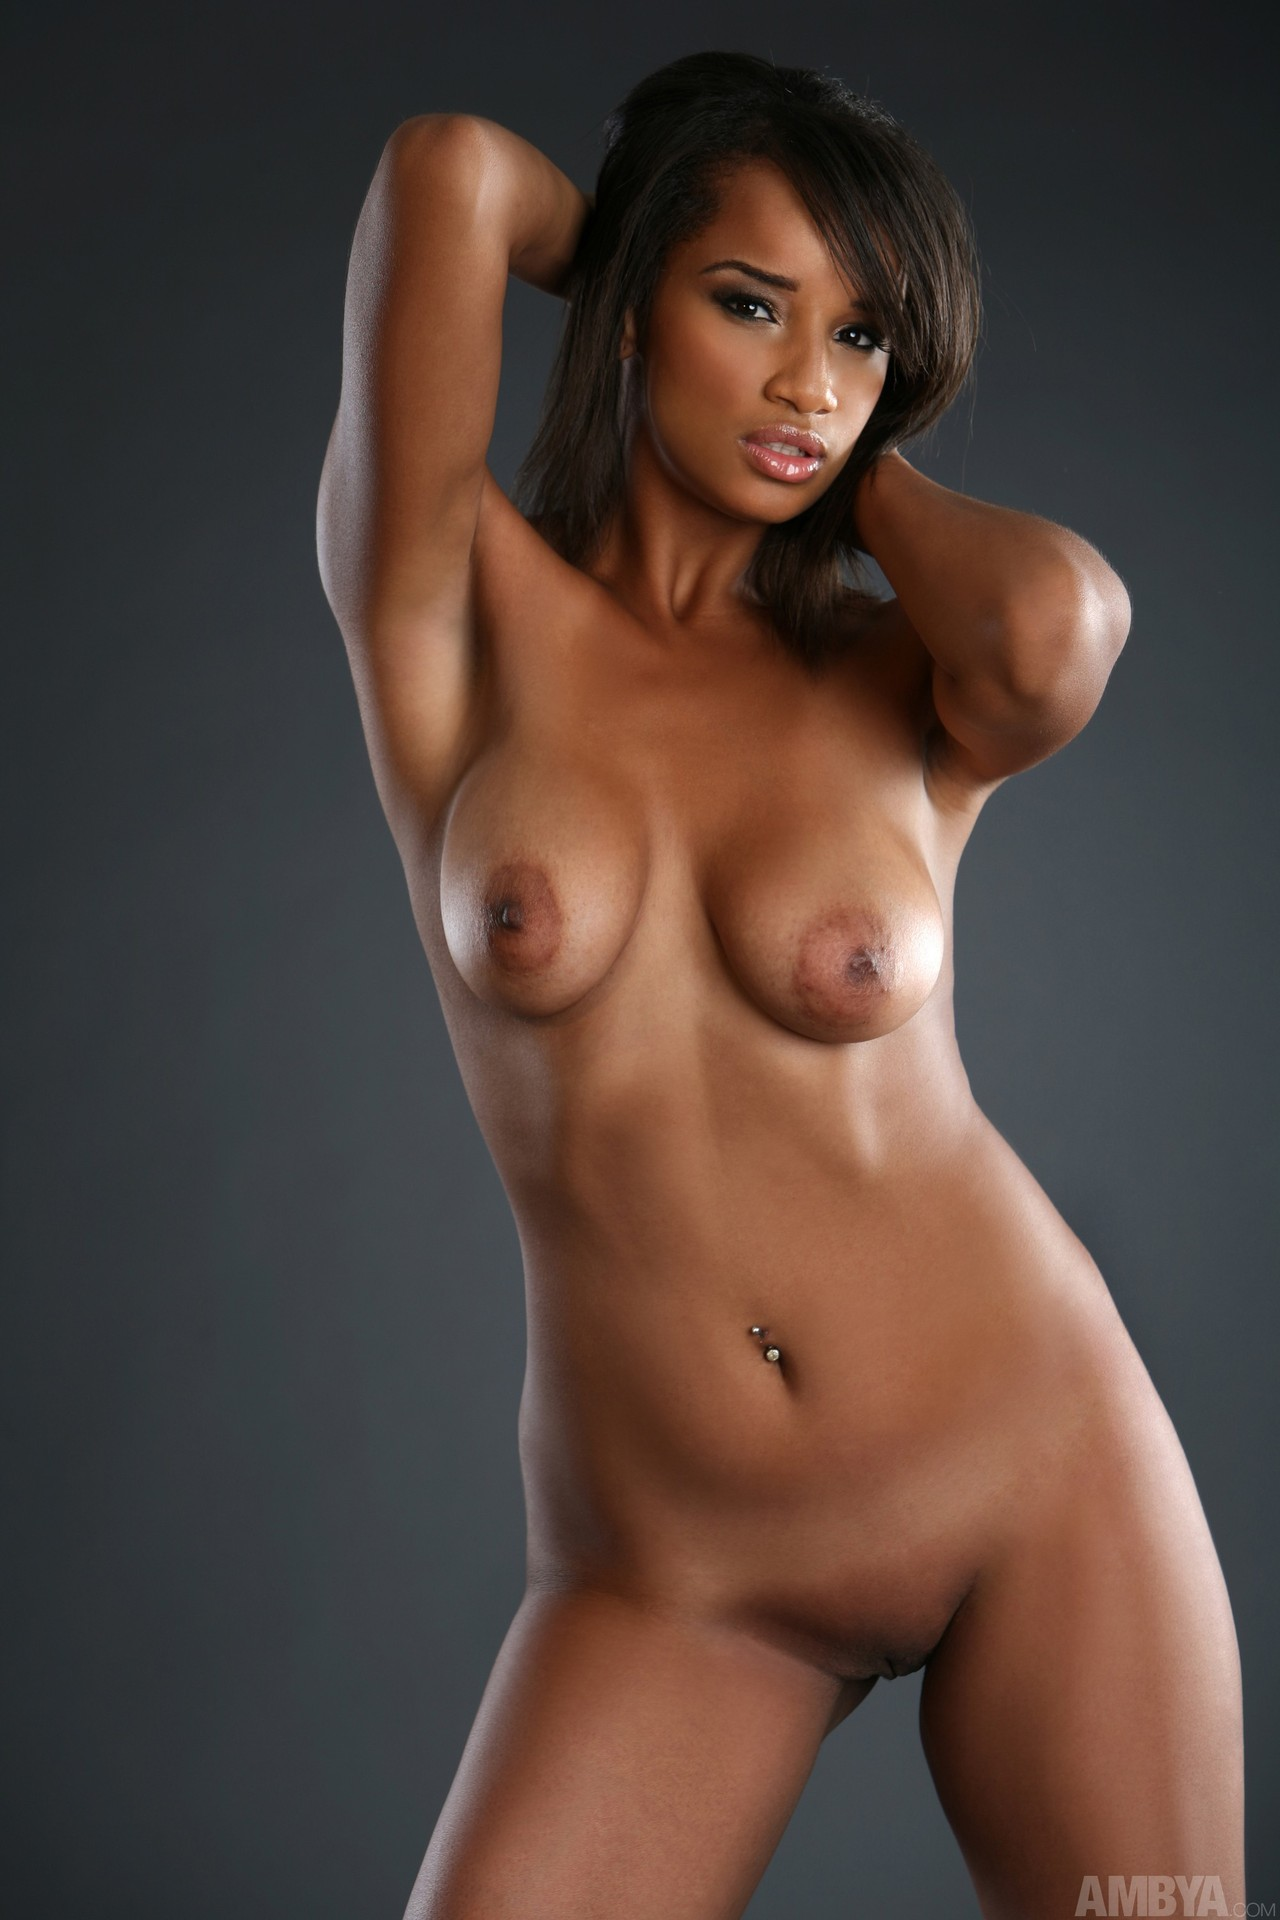 naked hot girl